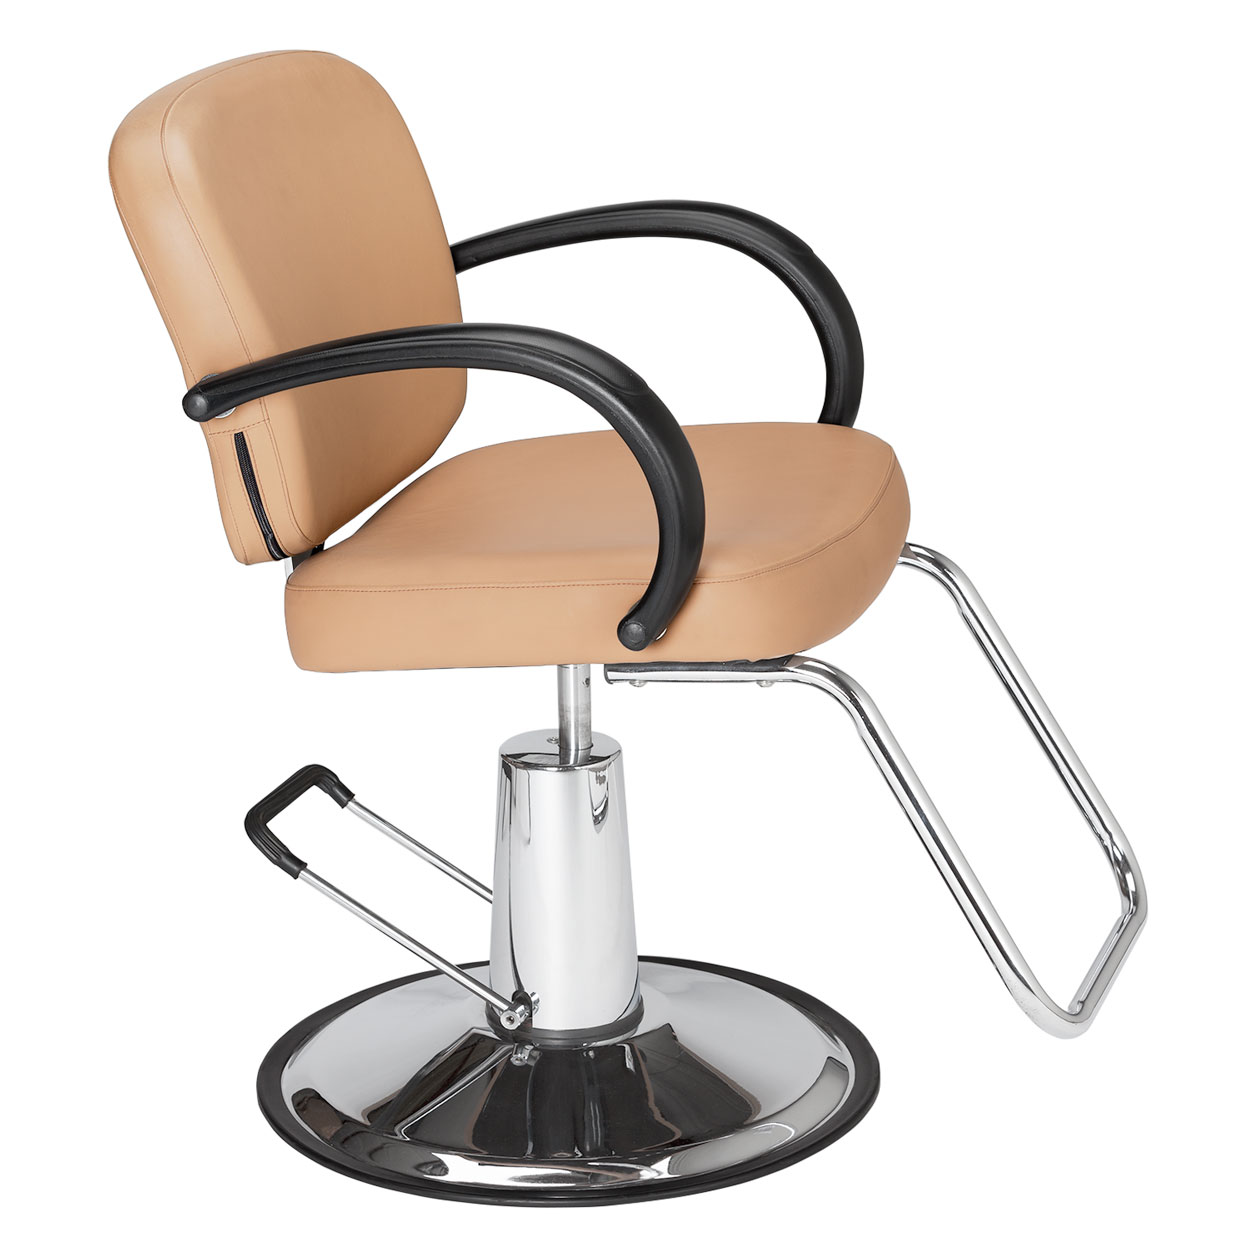 Pibbs 3606 Messina Styling Chair alternative product image 1